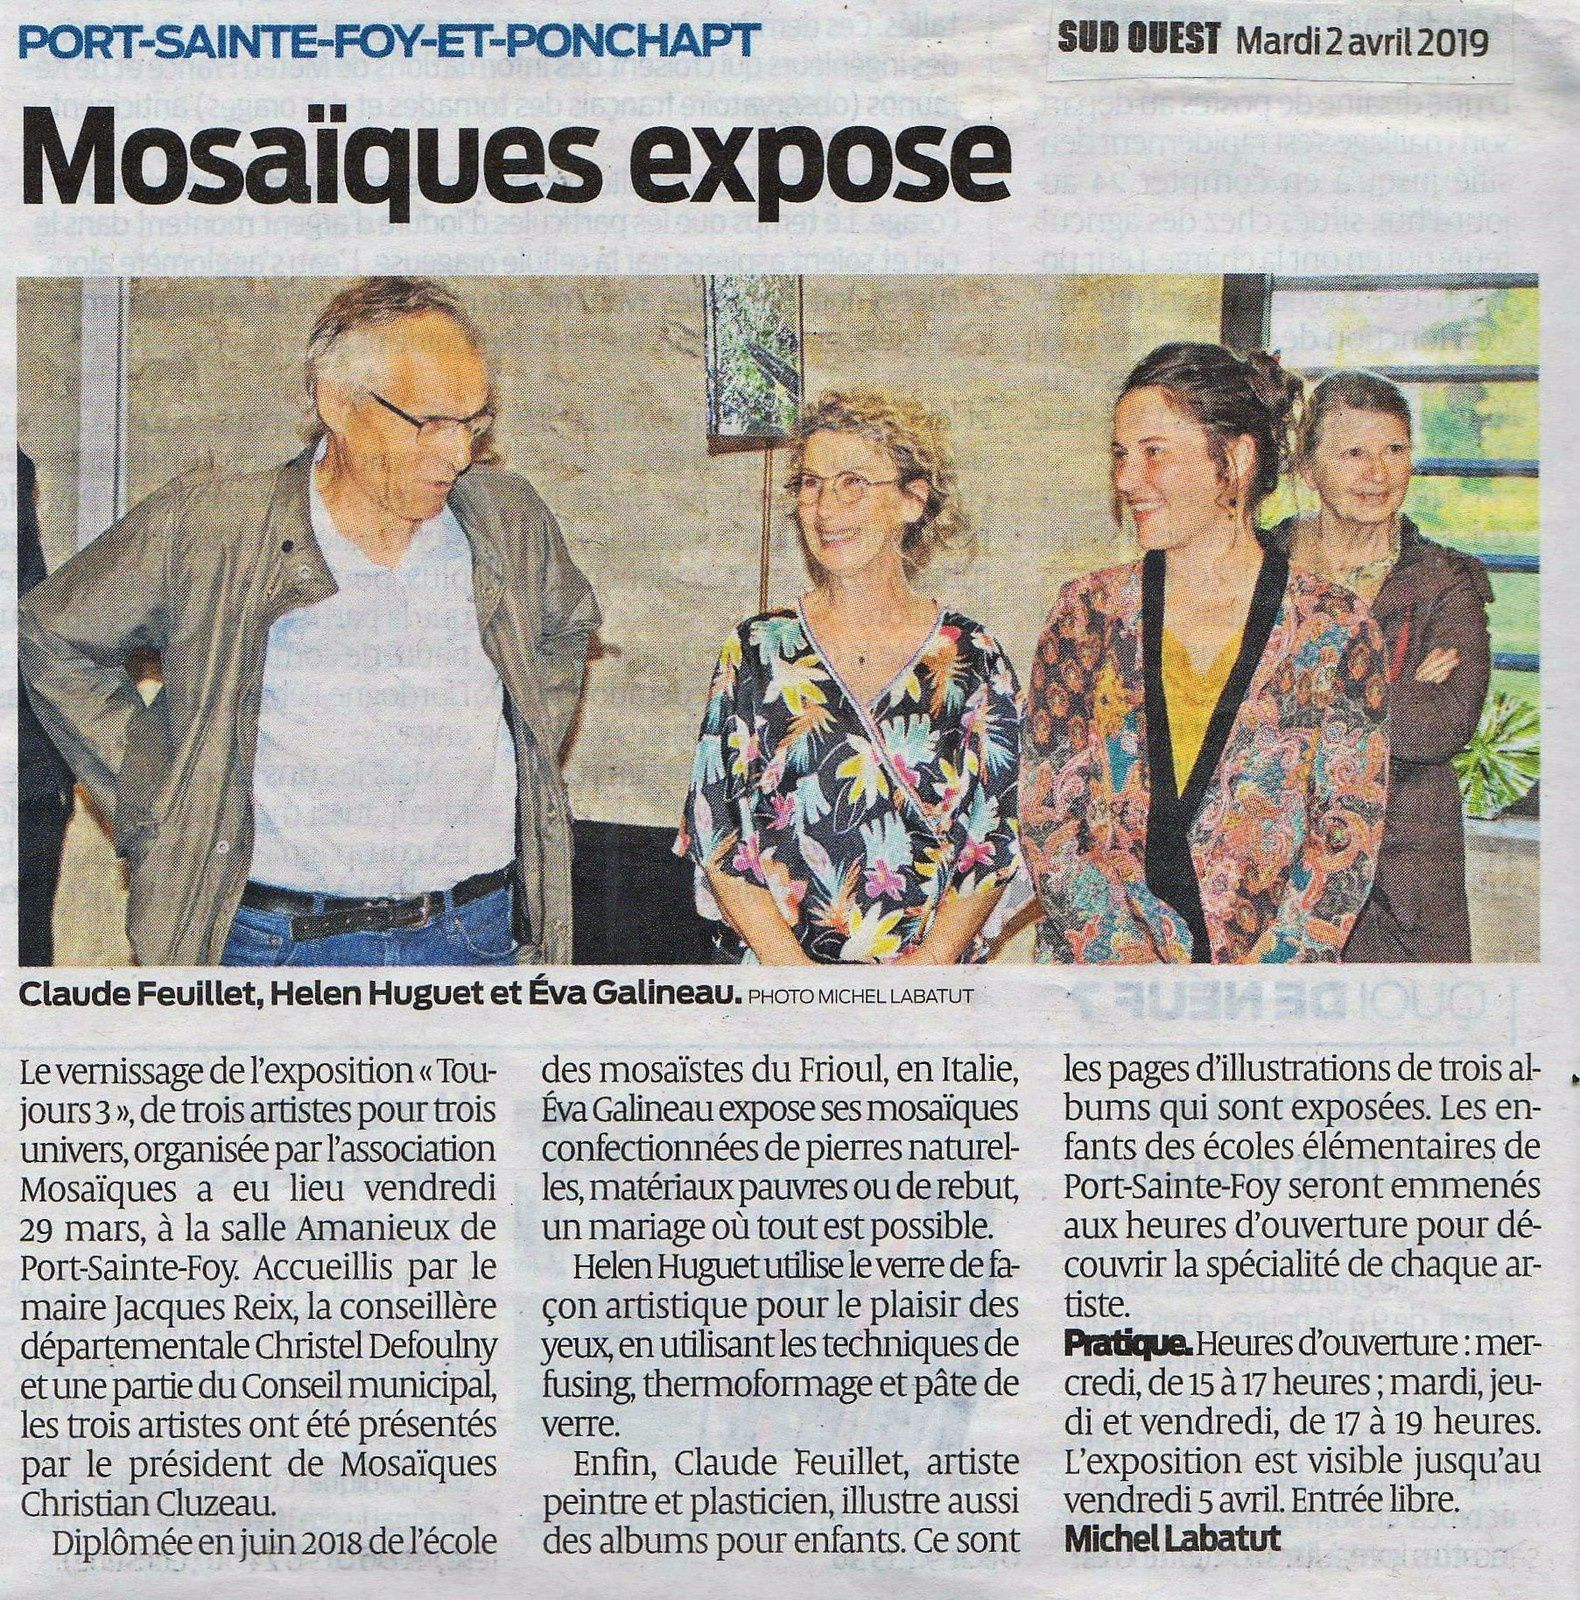 Sud Ouest 2 avril 2019